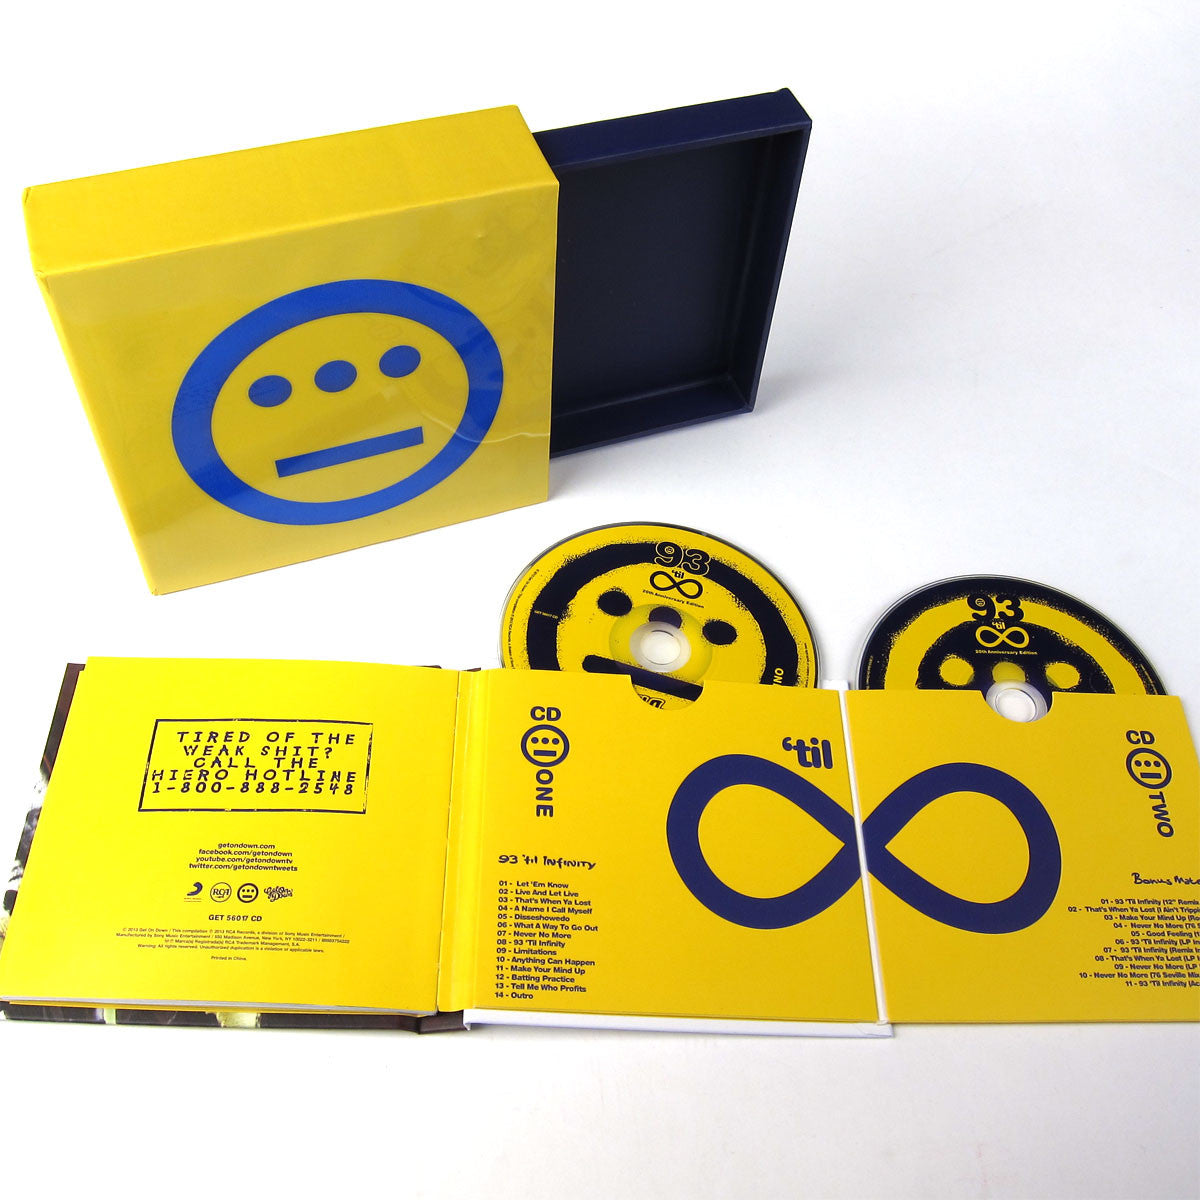 Souls of Mischief: 93 Til Infinity 20th Anniversary CD Boxset detail